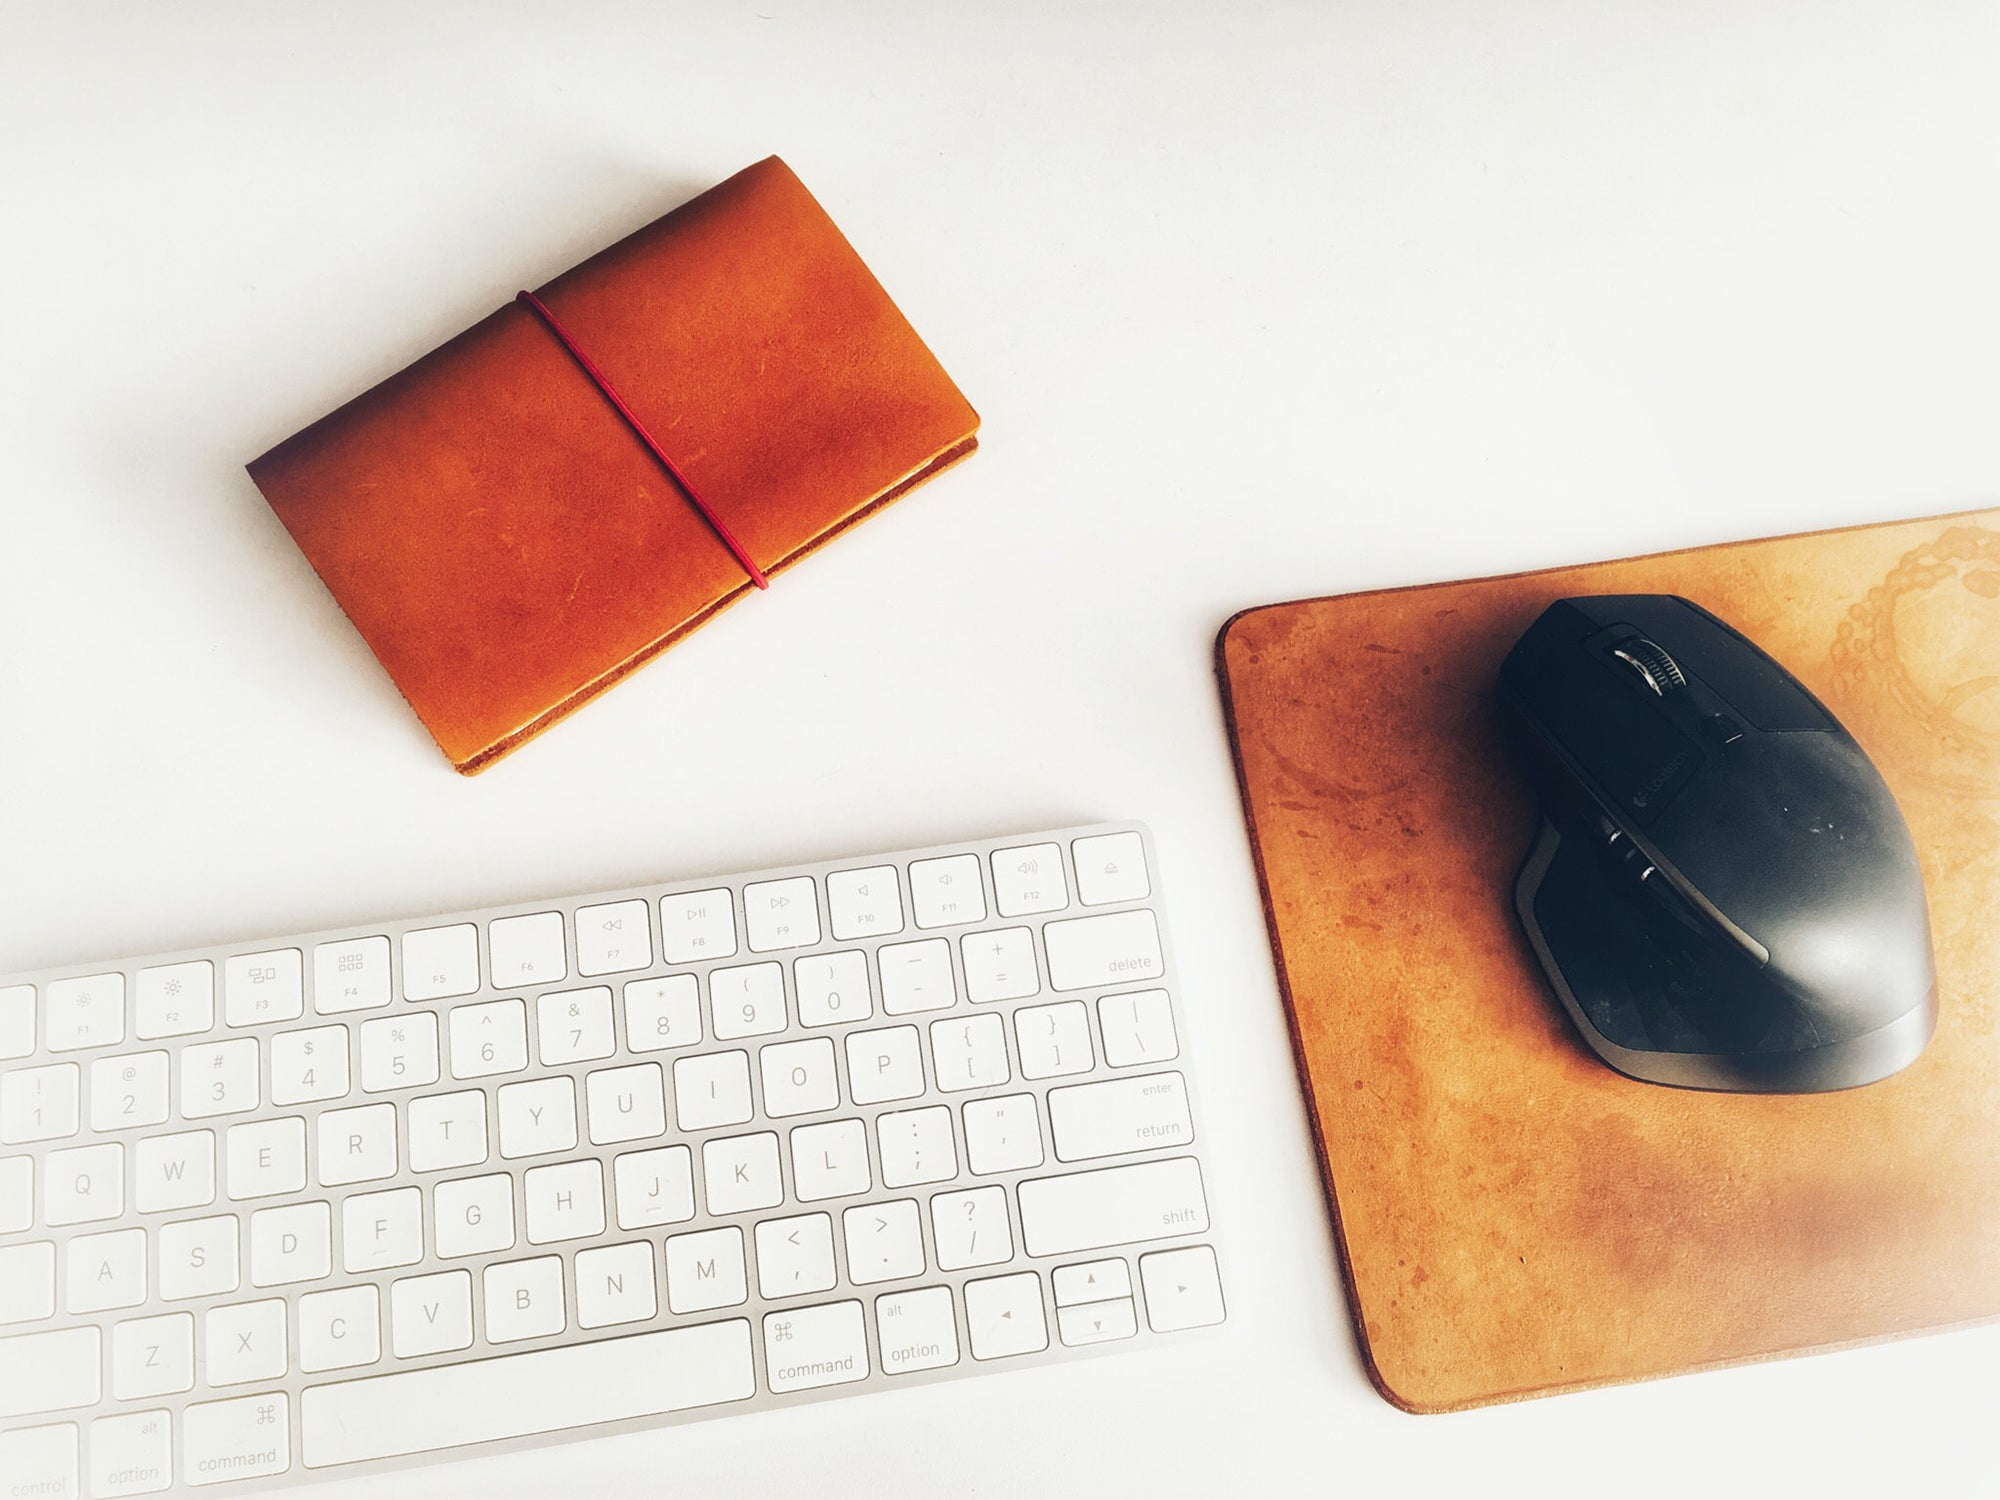 keyboard, leather mouse pad, and mouse on a white surface